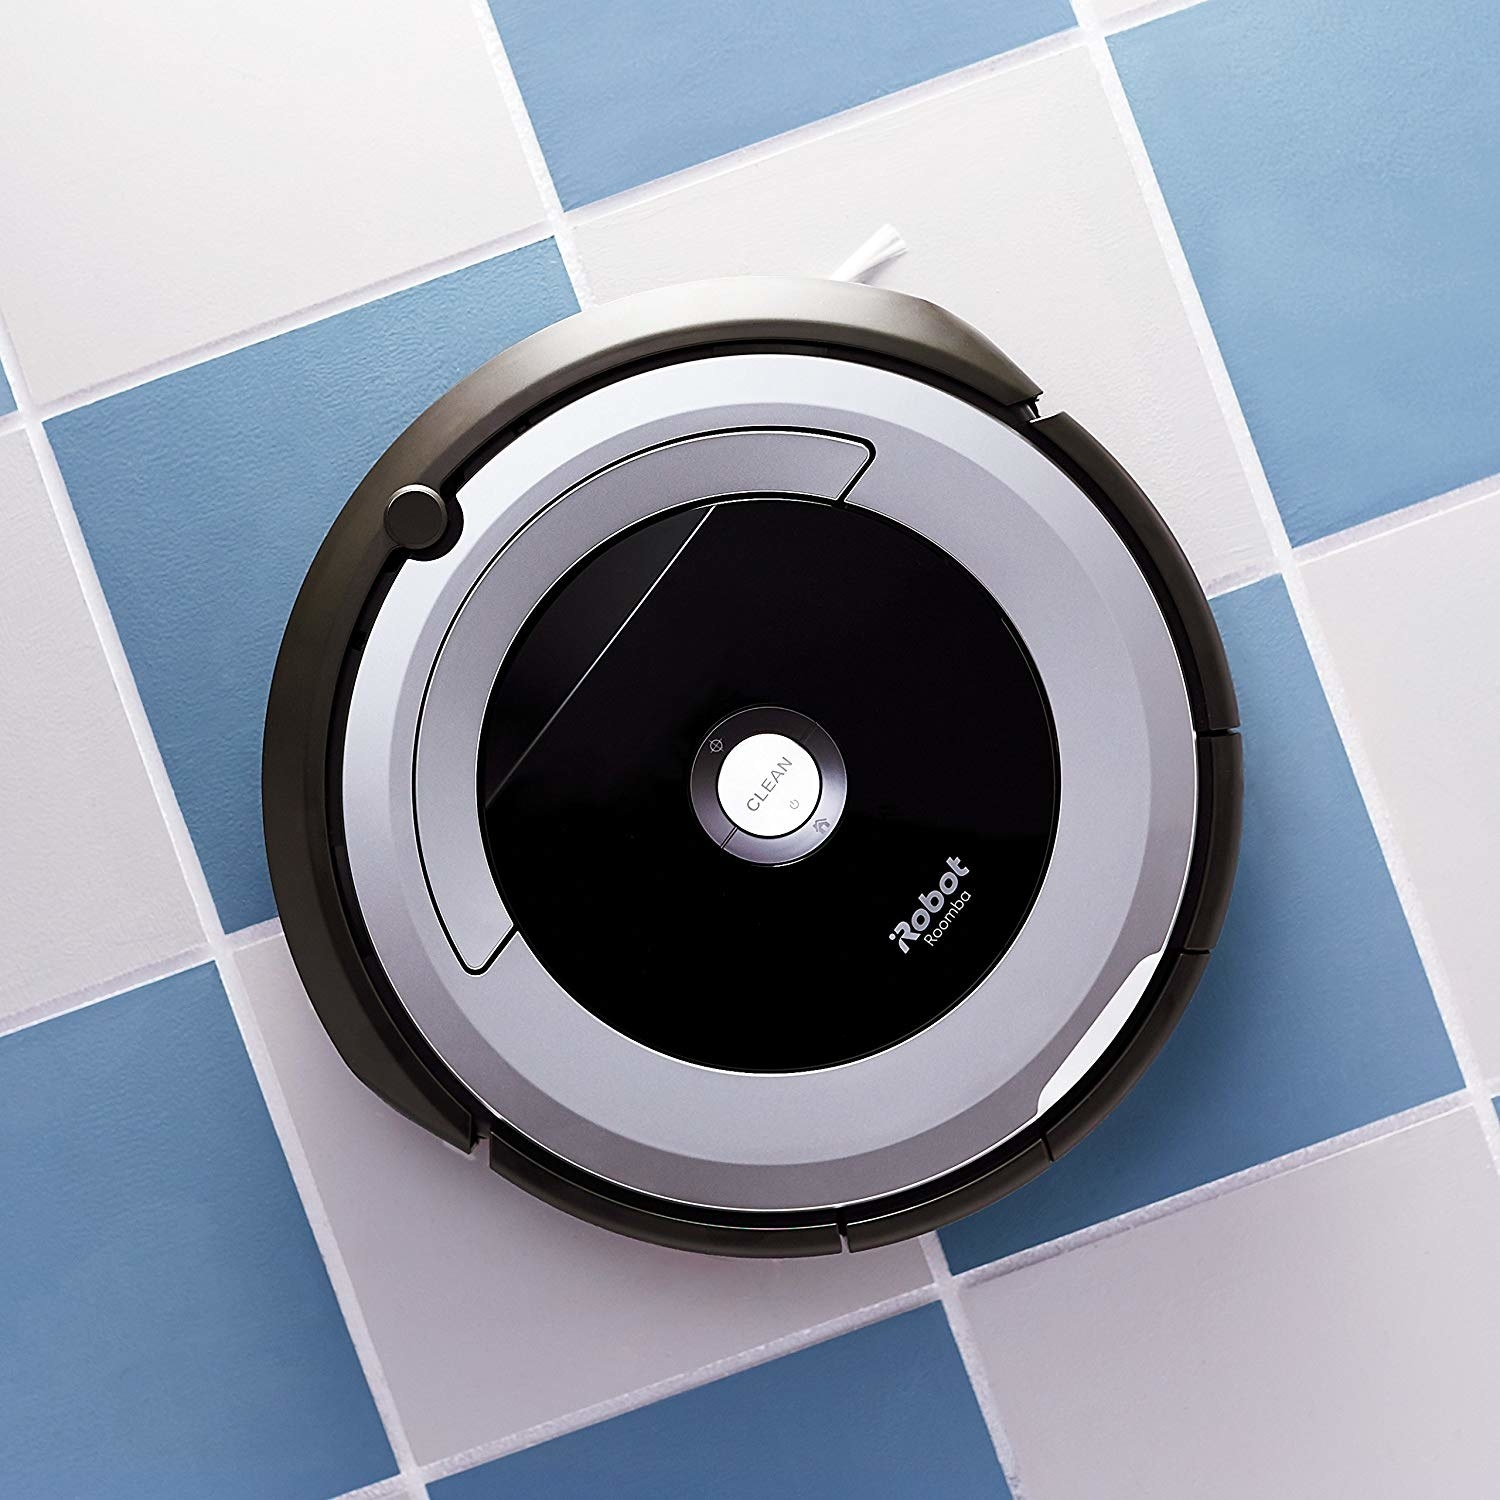 the circular robot vacuum on a tile floor